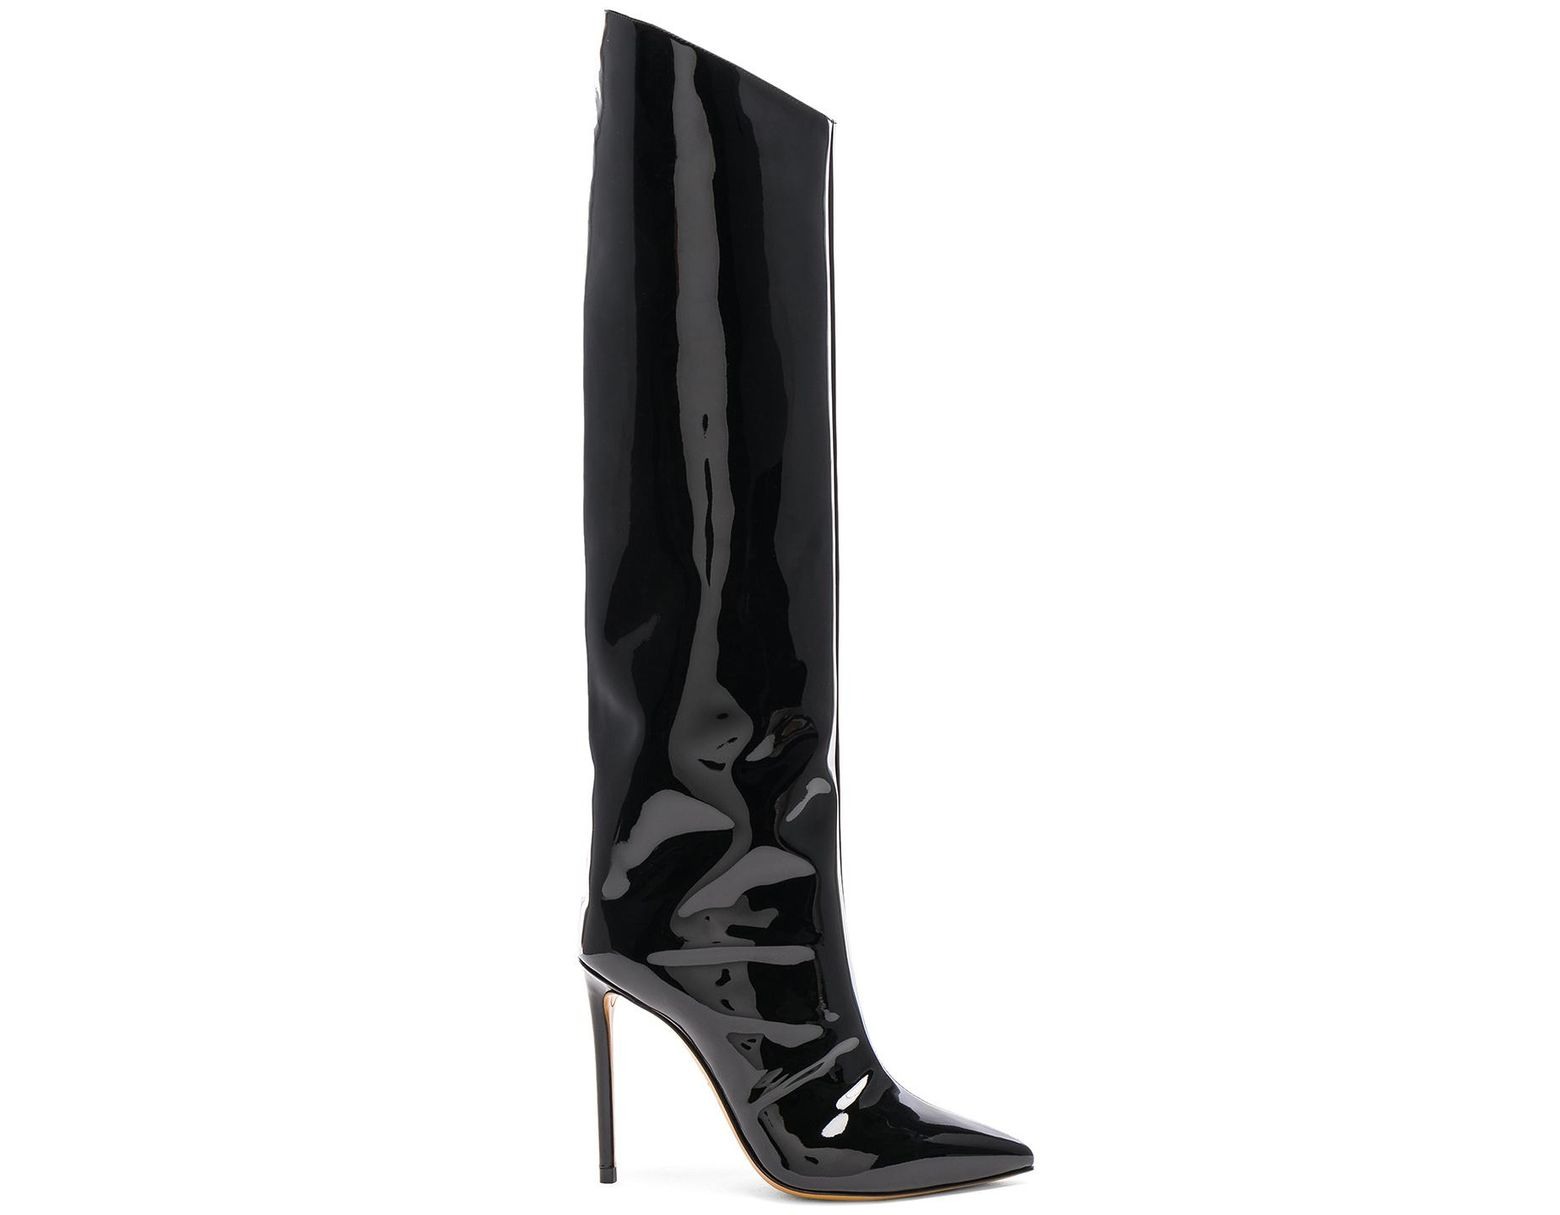 636eee56200 Alexandre Vauthier Alex Patent Leather Knee-high Boots in Black - Lyst